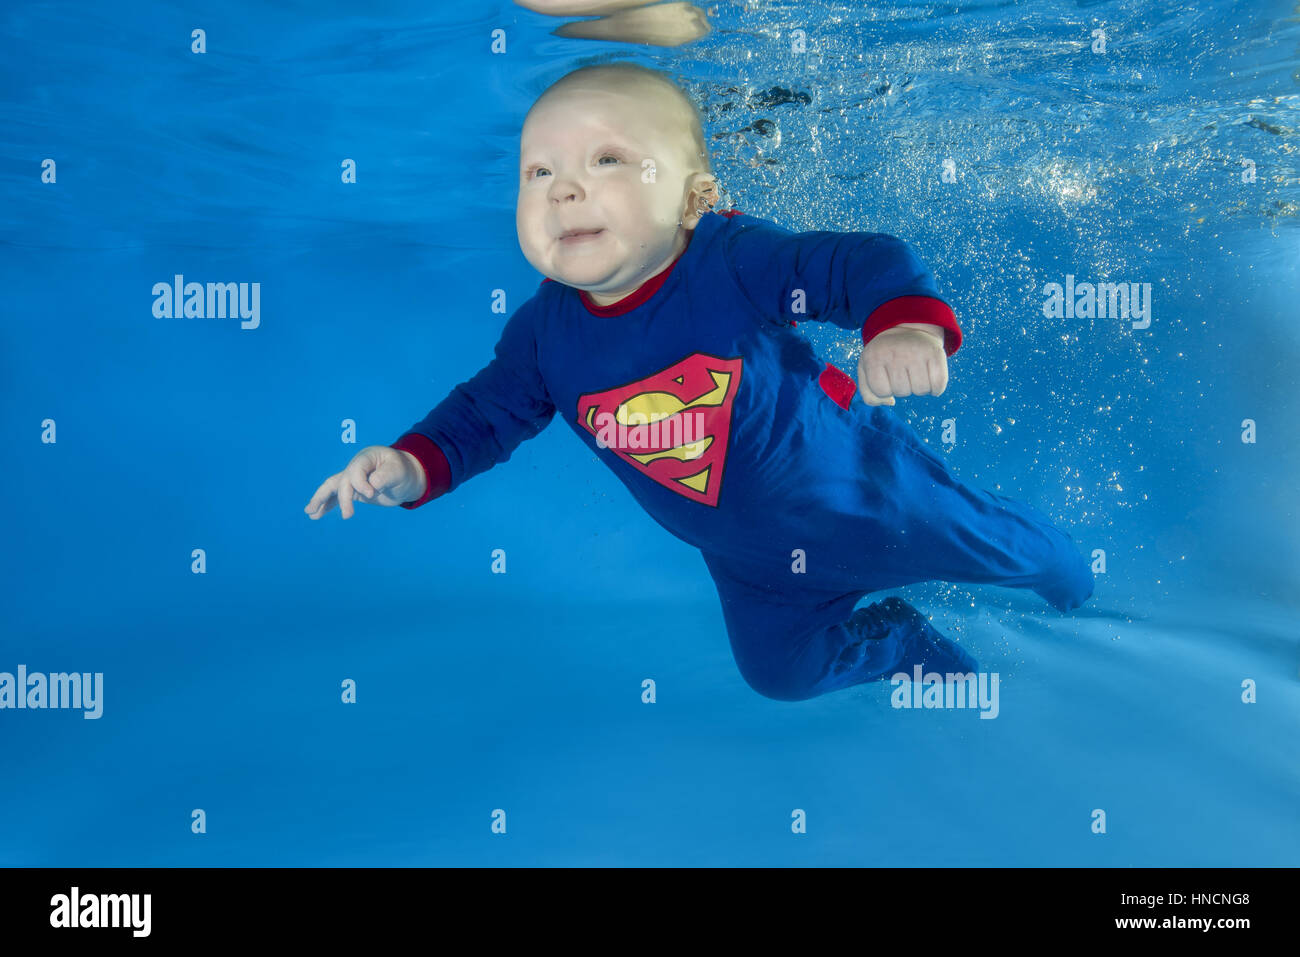 96e80ea3a7e7c Litle boy in Superman costume posing under water in swimming pool, Odessa,  Ukraine